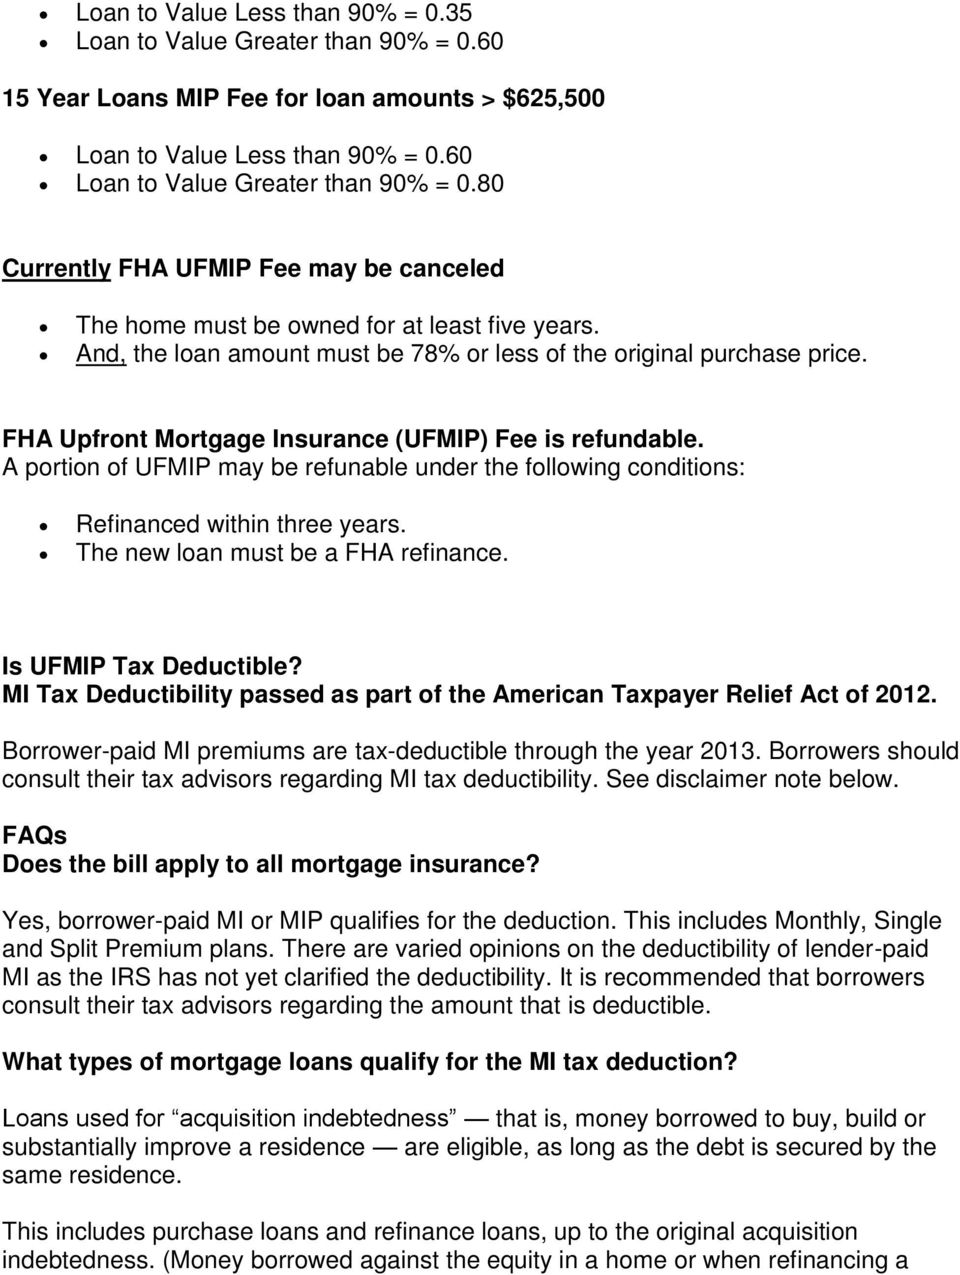 FHA Upfront Mortgage Insurance (UFMIP) Fee is refundable. A portion of UFMIP may be refunable under the following conditions: Refinanced within three years. The new loan must be a FHA refinance.